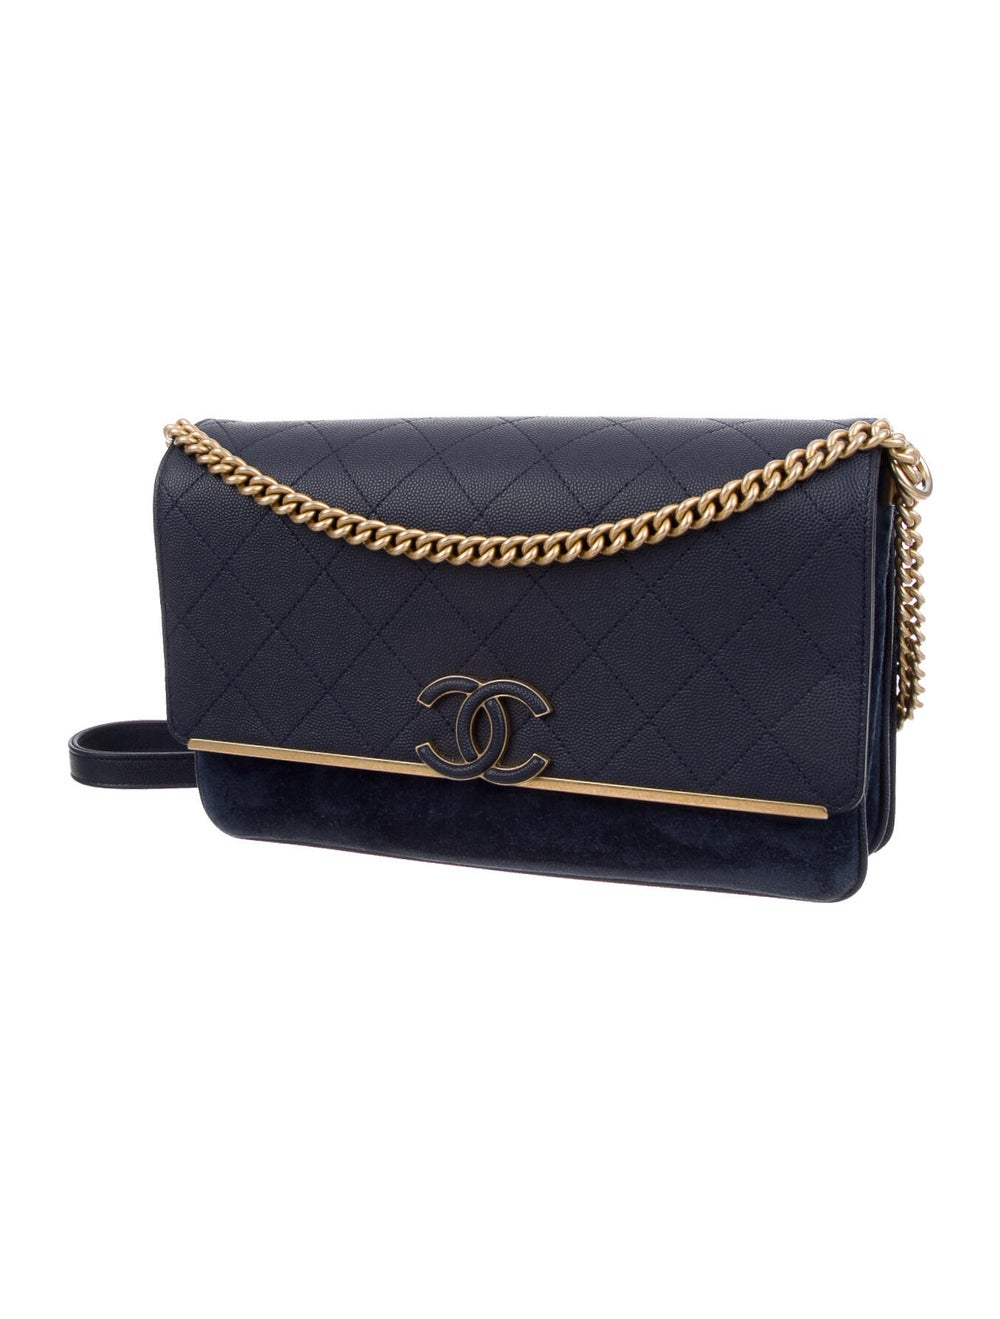 Chanel Suede Lady Coco Flap Bag Blue - image 2